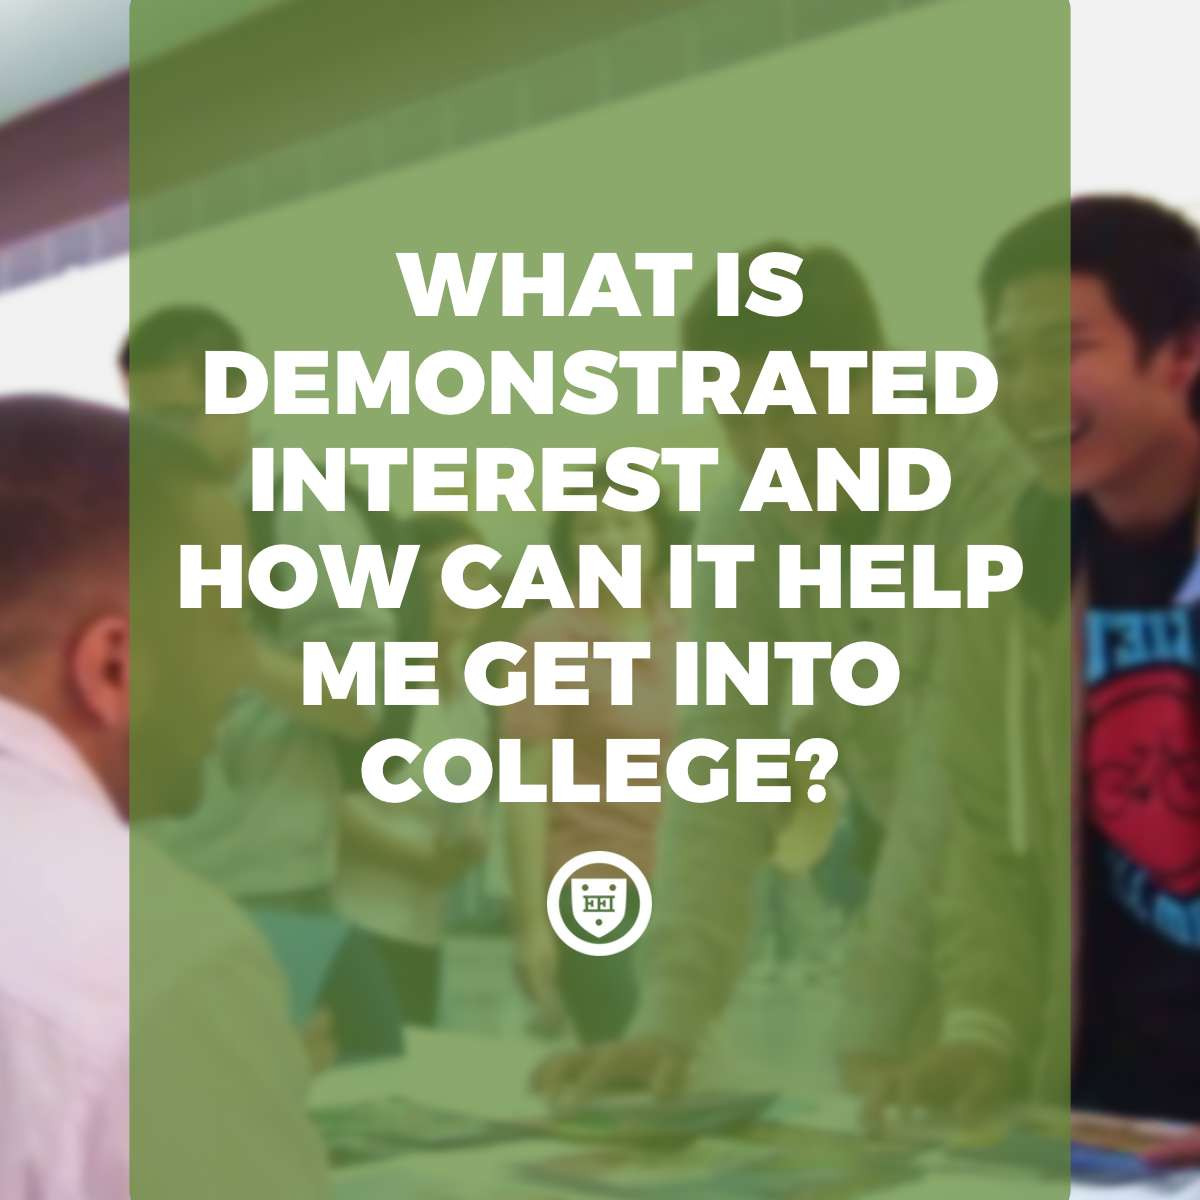 What is demonstrated interest and how can it help me get into college?